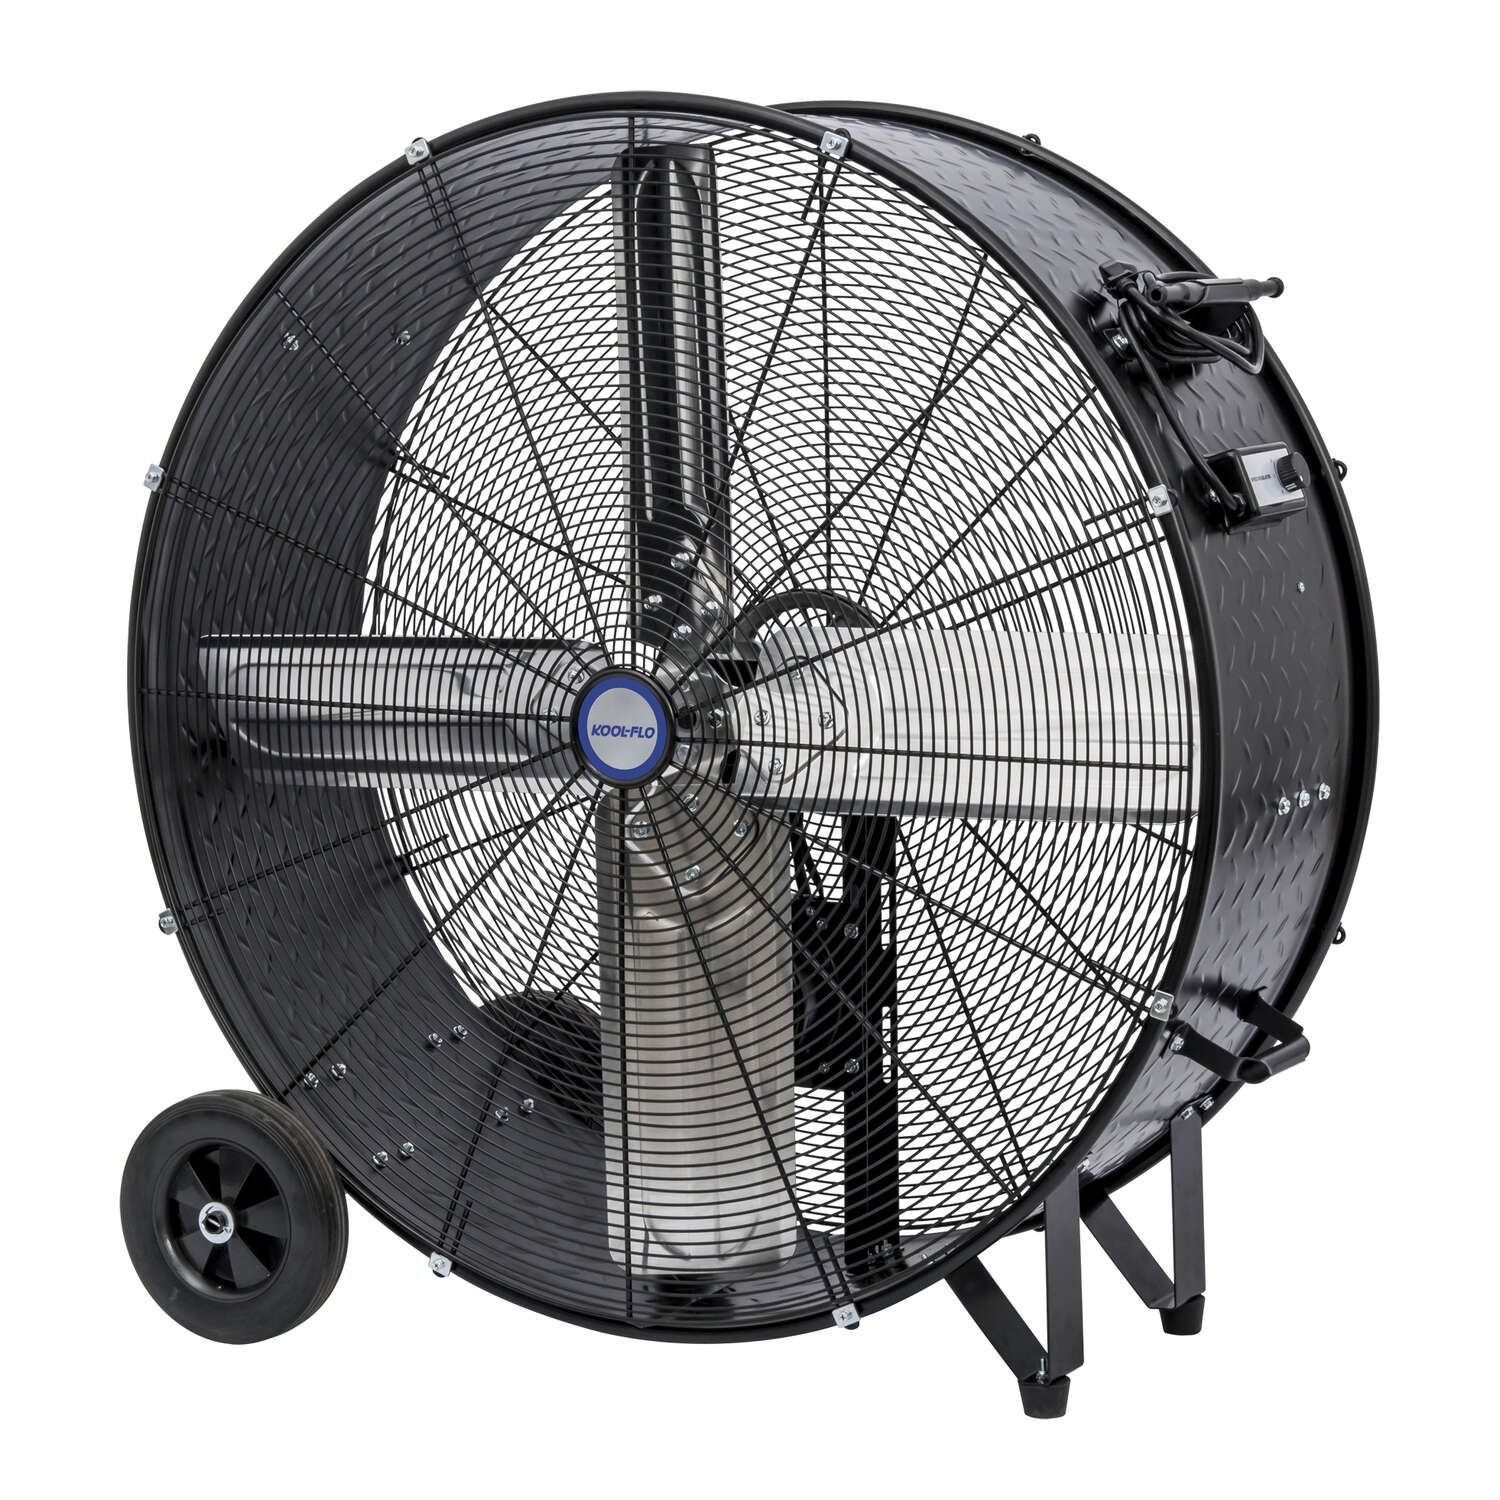 KOOL-FLO  48.9 in. H x 42 in. Dia. 2 speed Electric  Drum Fan